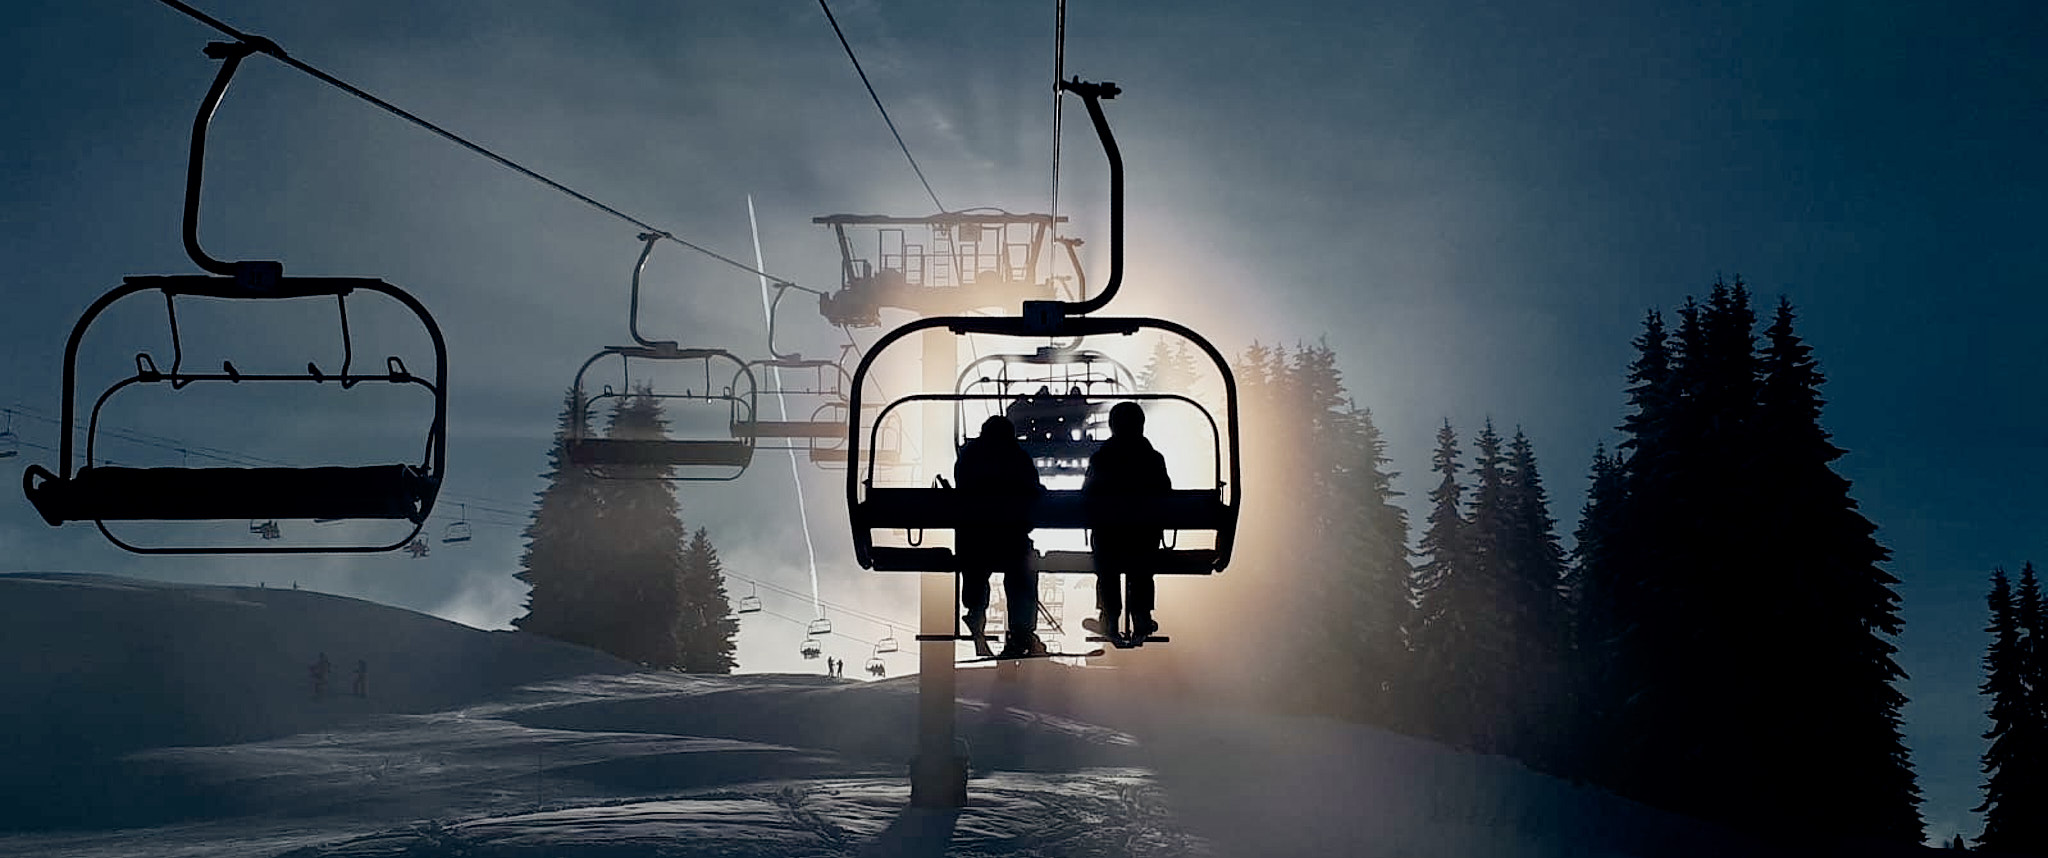 Silhouette of Chairlift